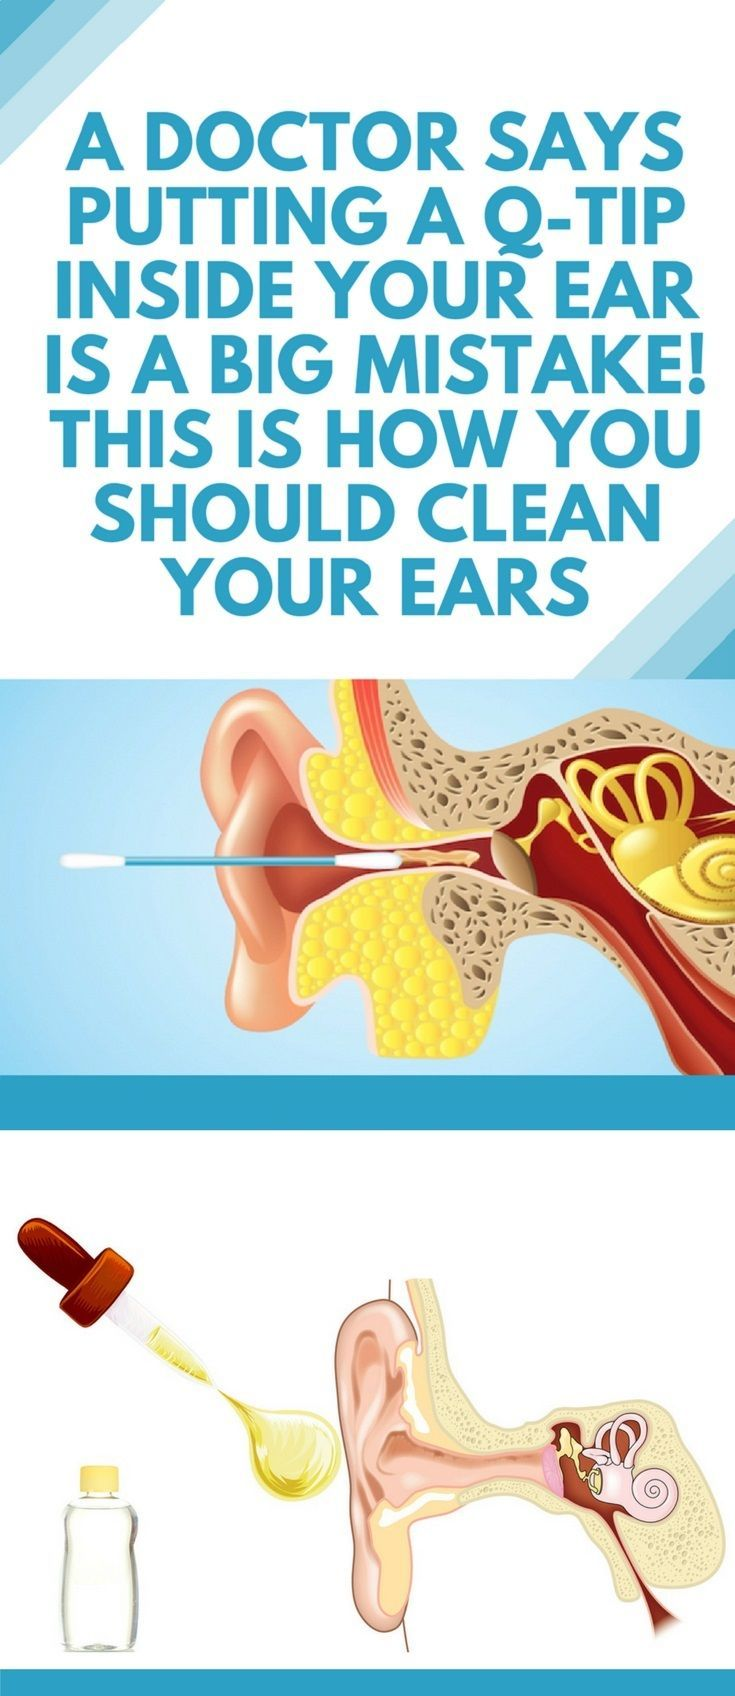 A doctor says putting a qtip inside your ear is a big